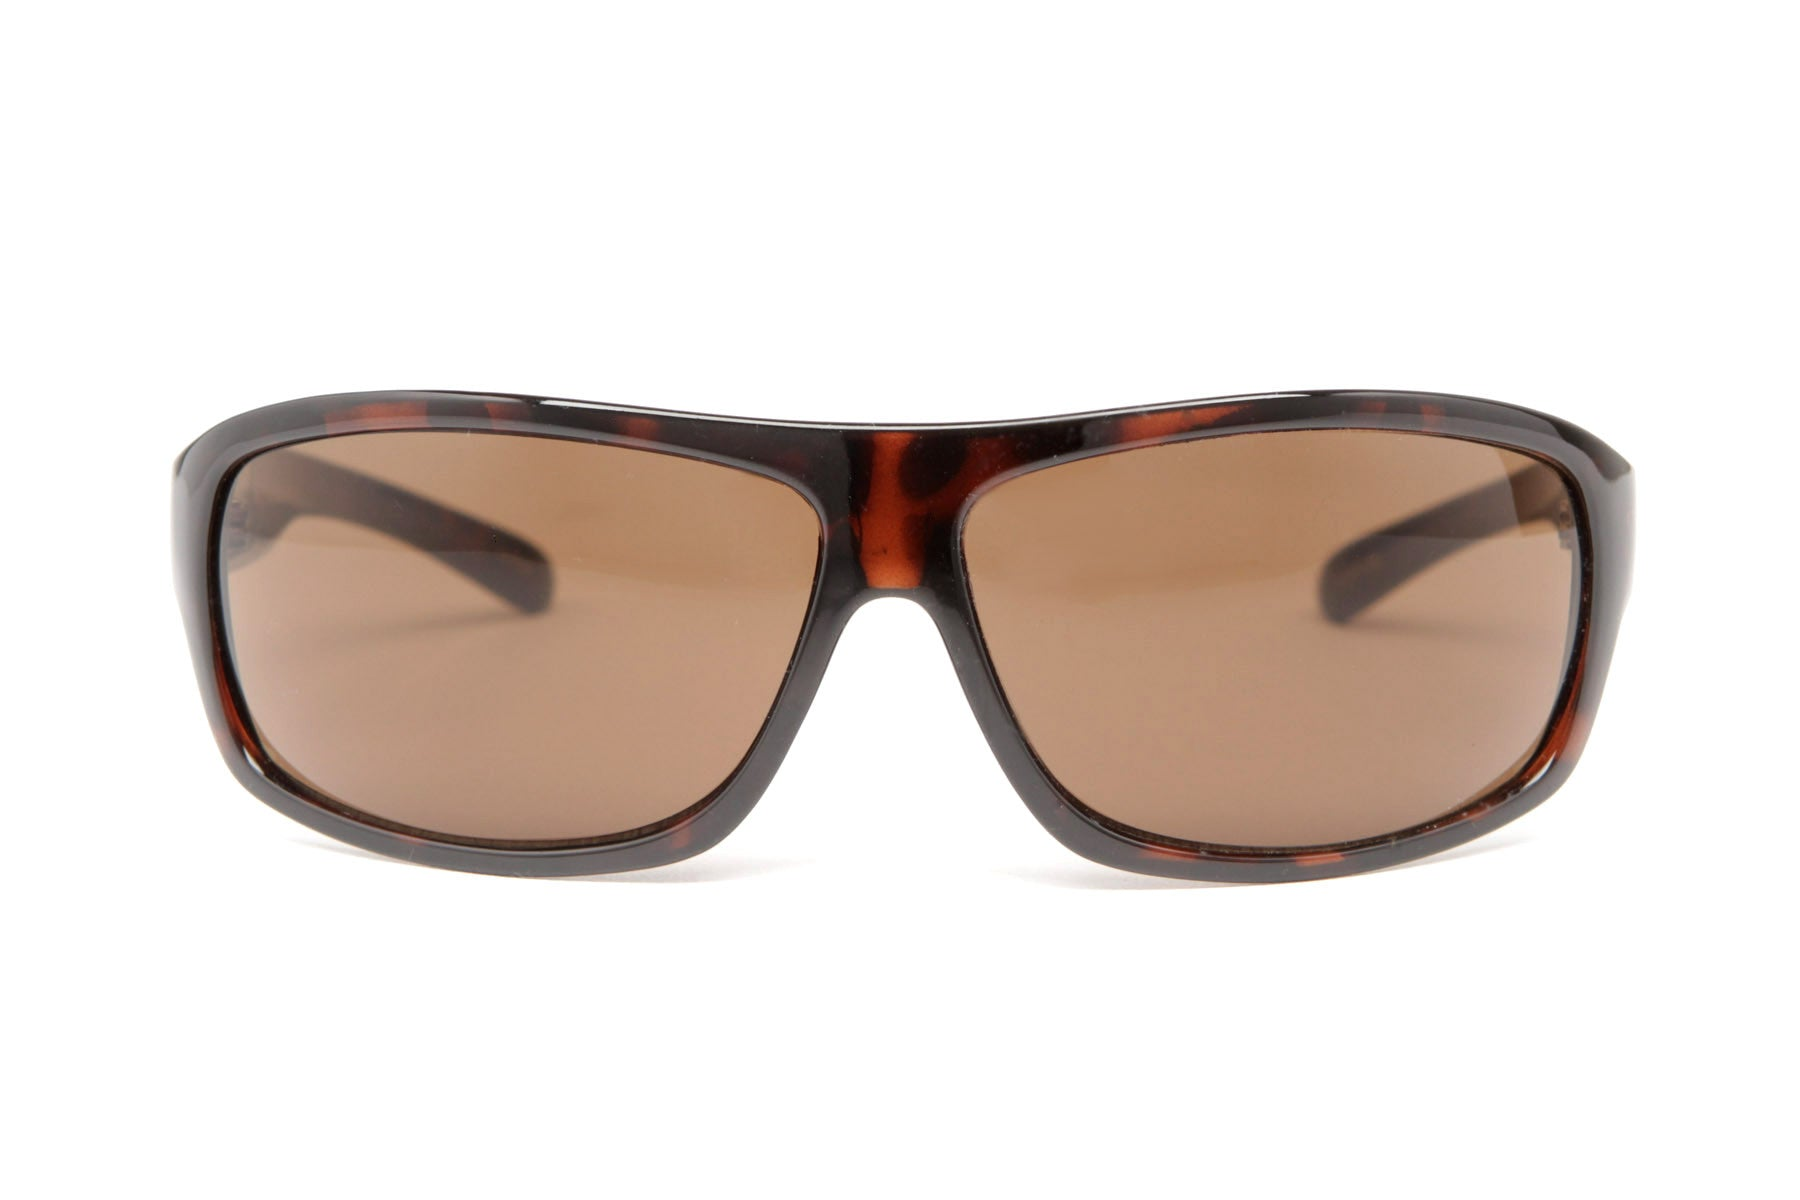 Mido Square Frame Sunglasses